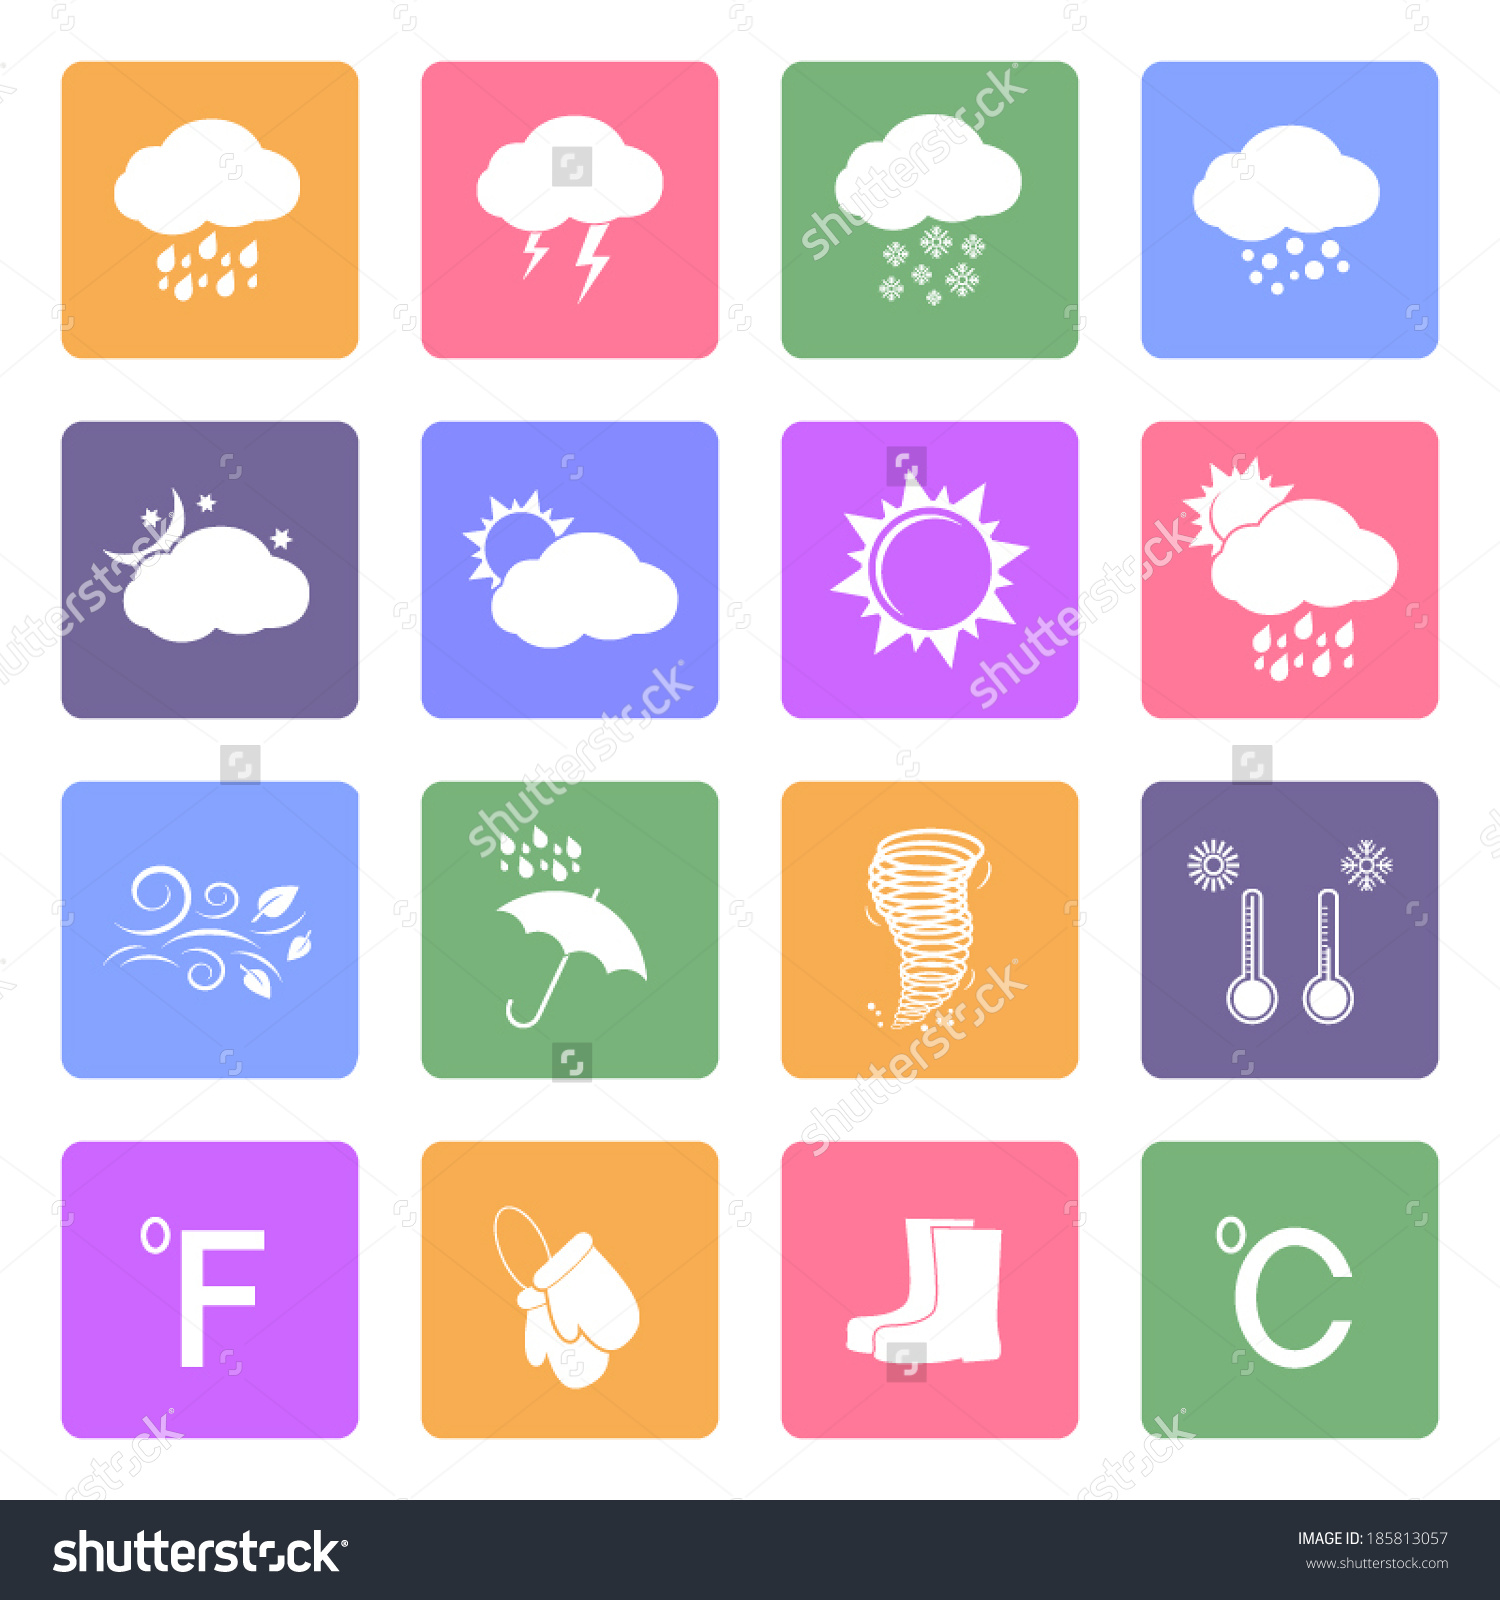 Weather Icons Set, Flat Design Vector.